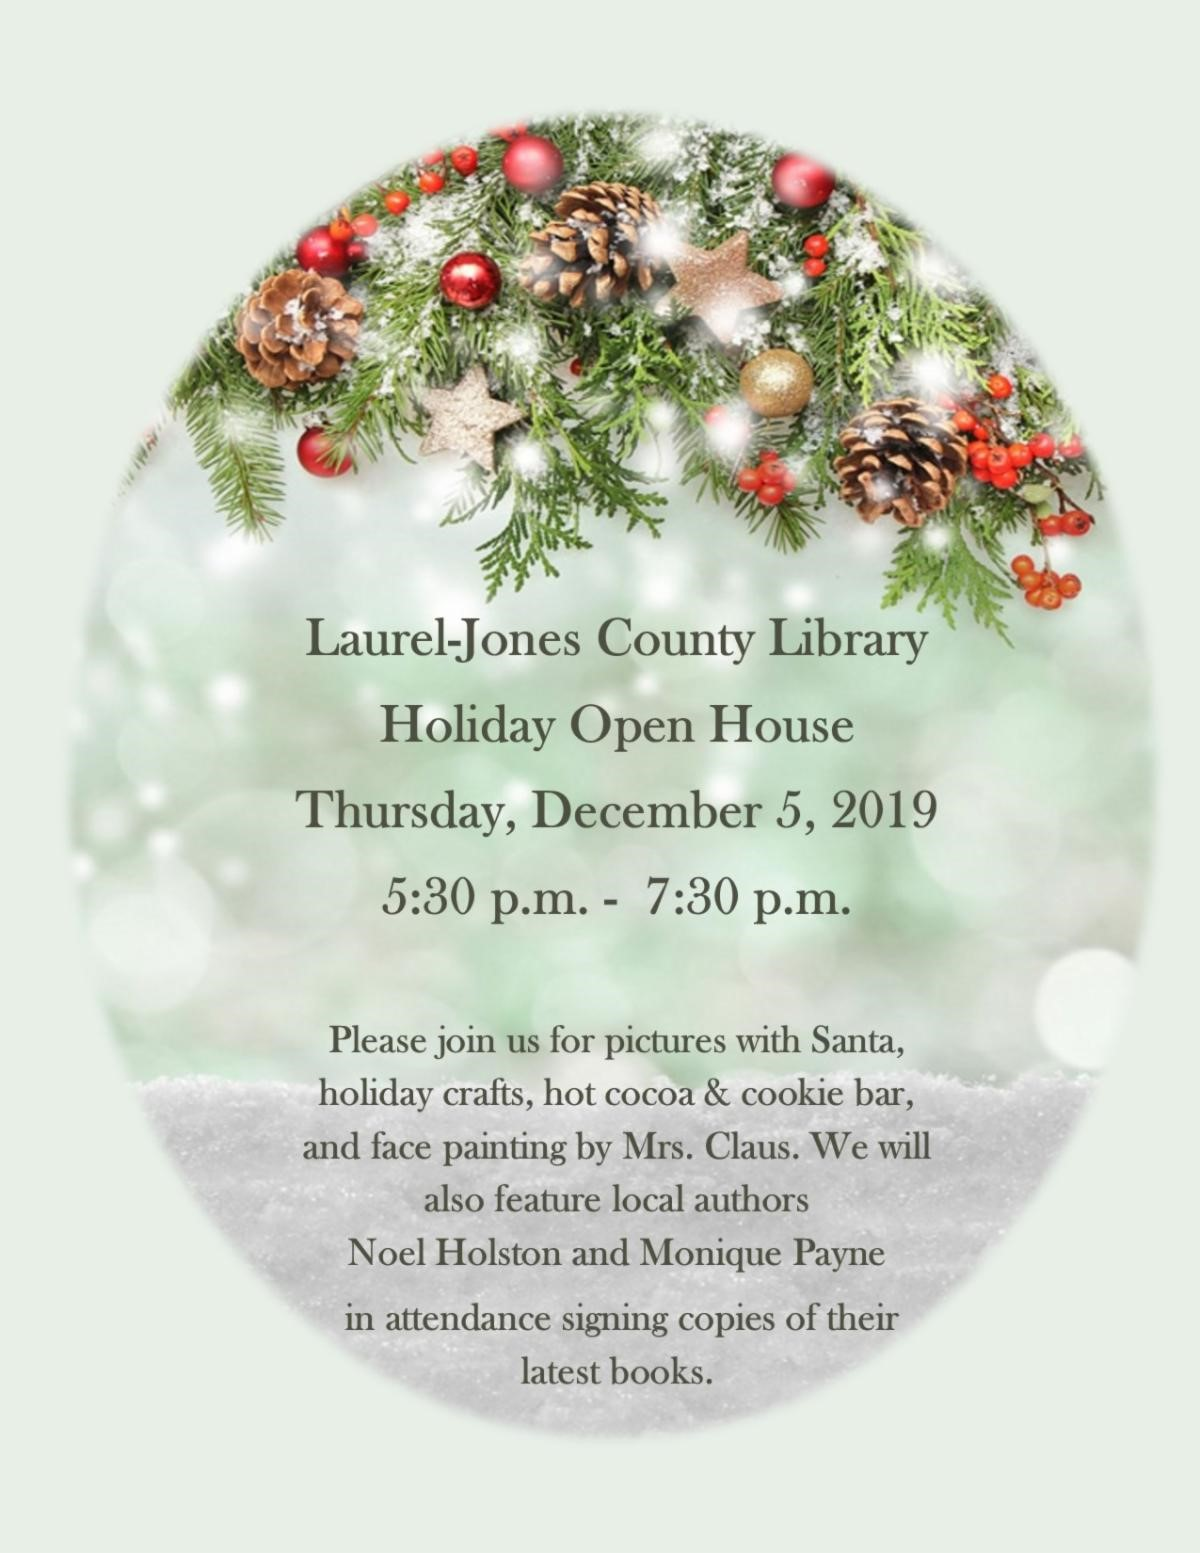 The City of Laurel, Laurel-Jones County Library Holiday Open House